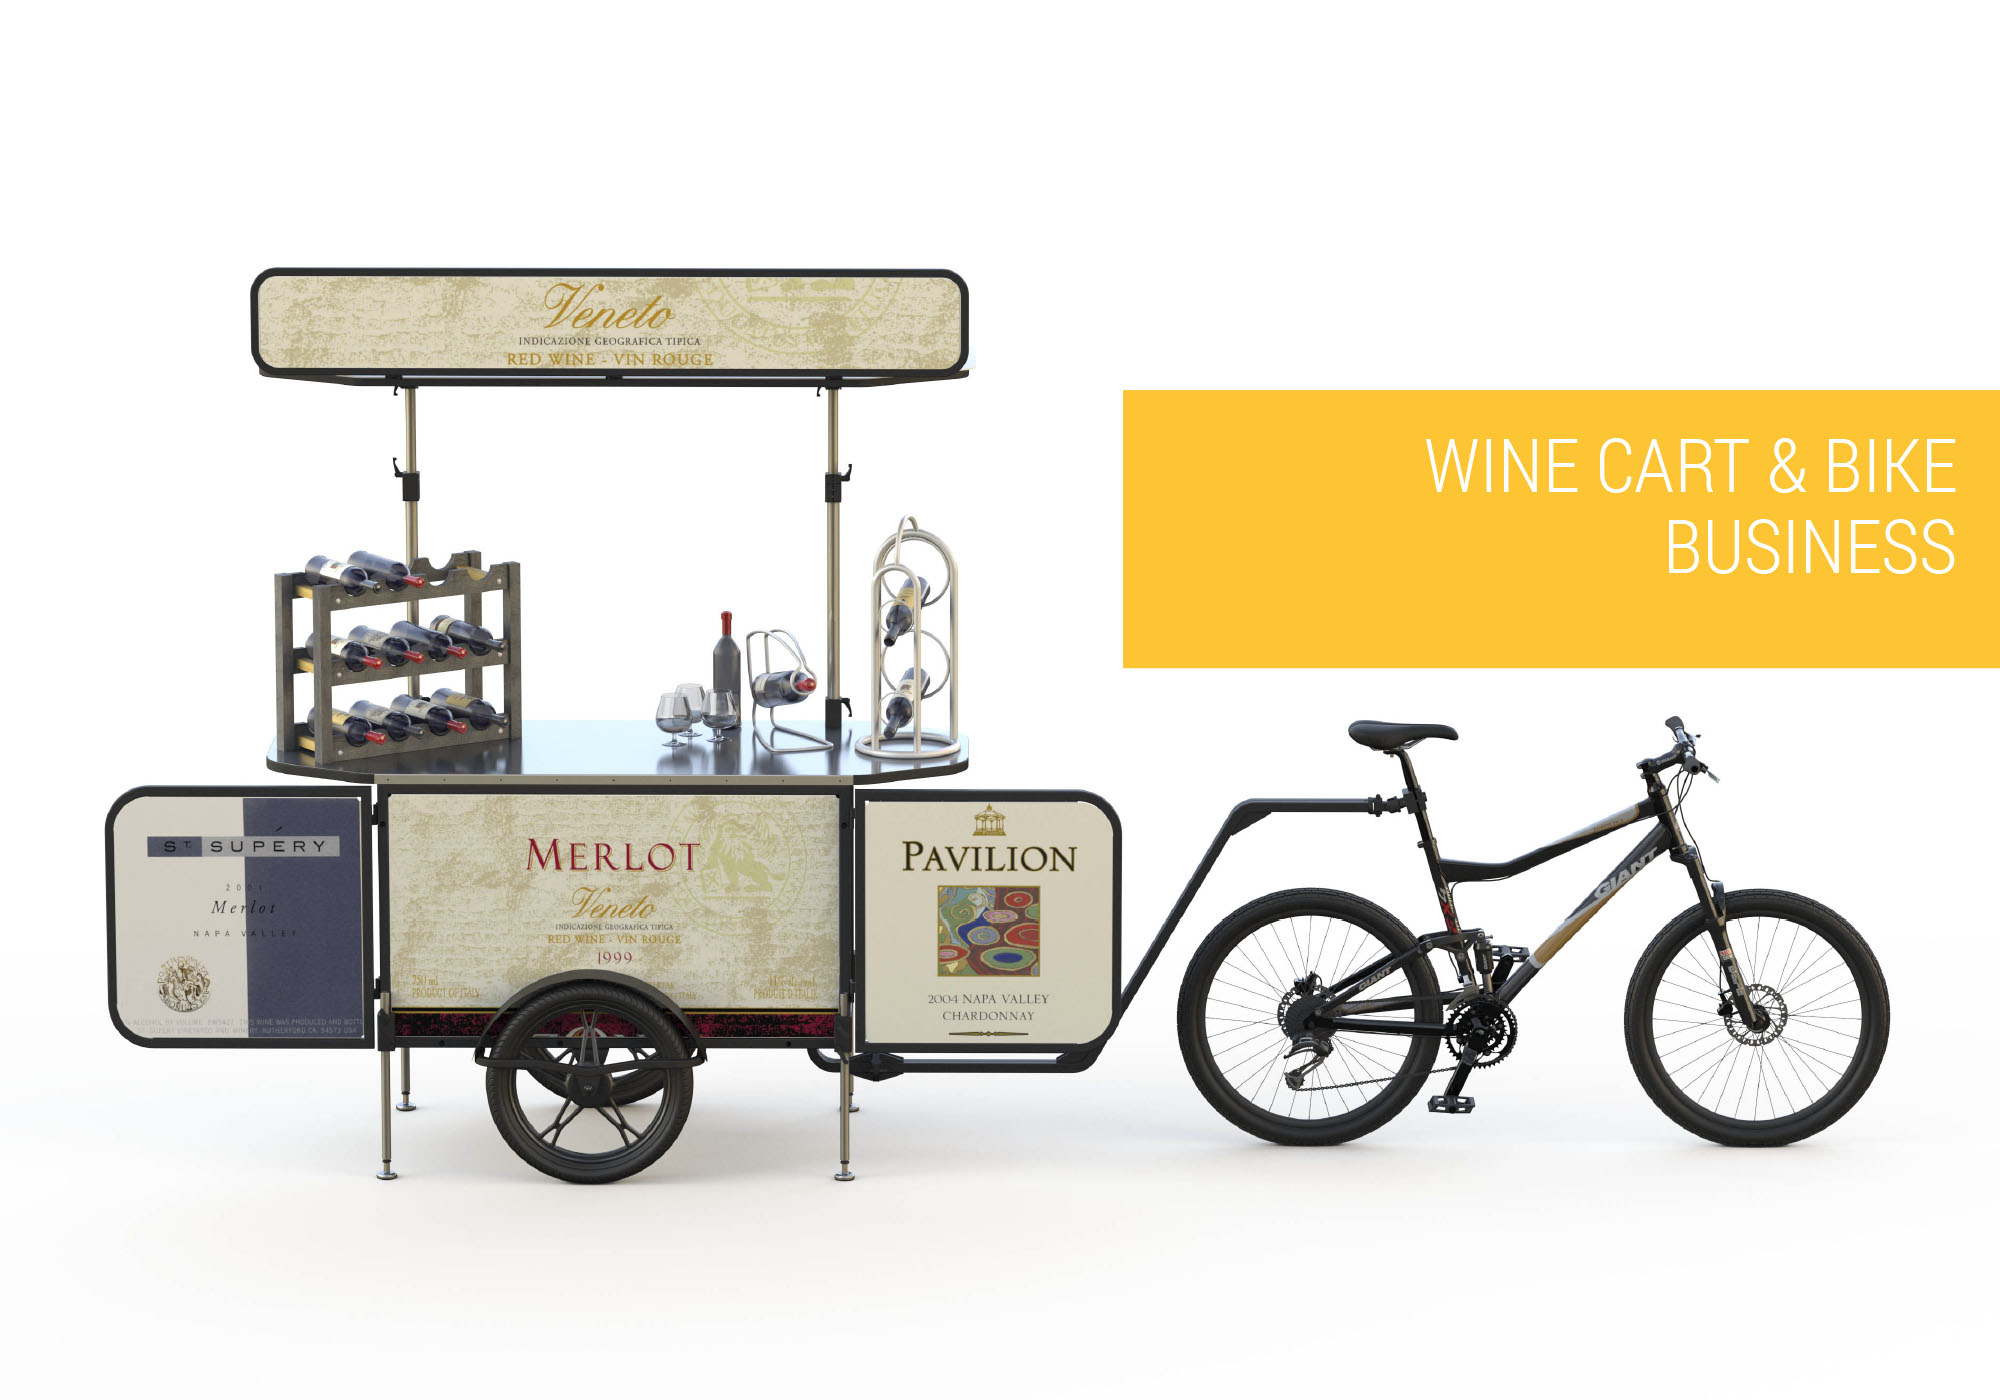 Wine cart and wine bike business Bizz On Wheels